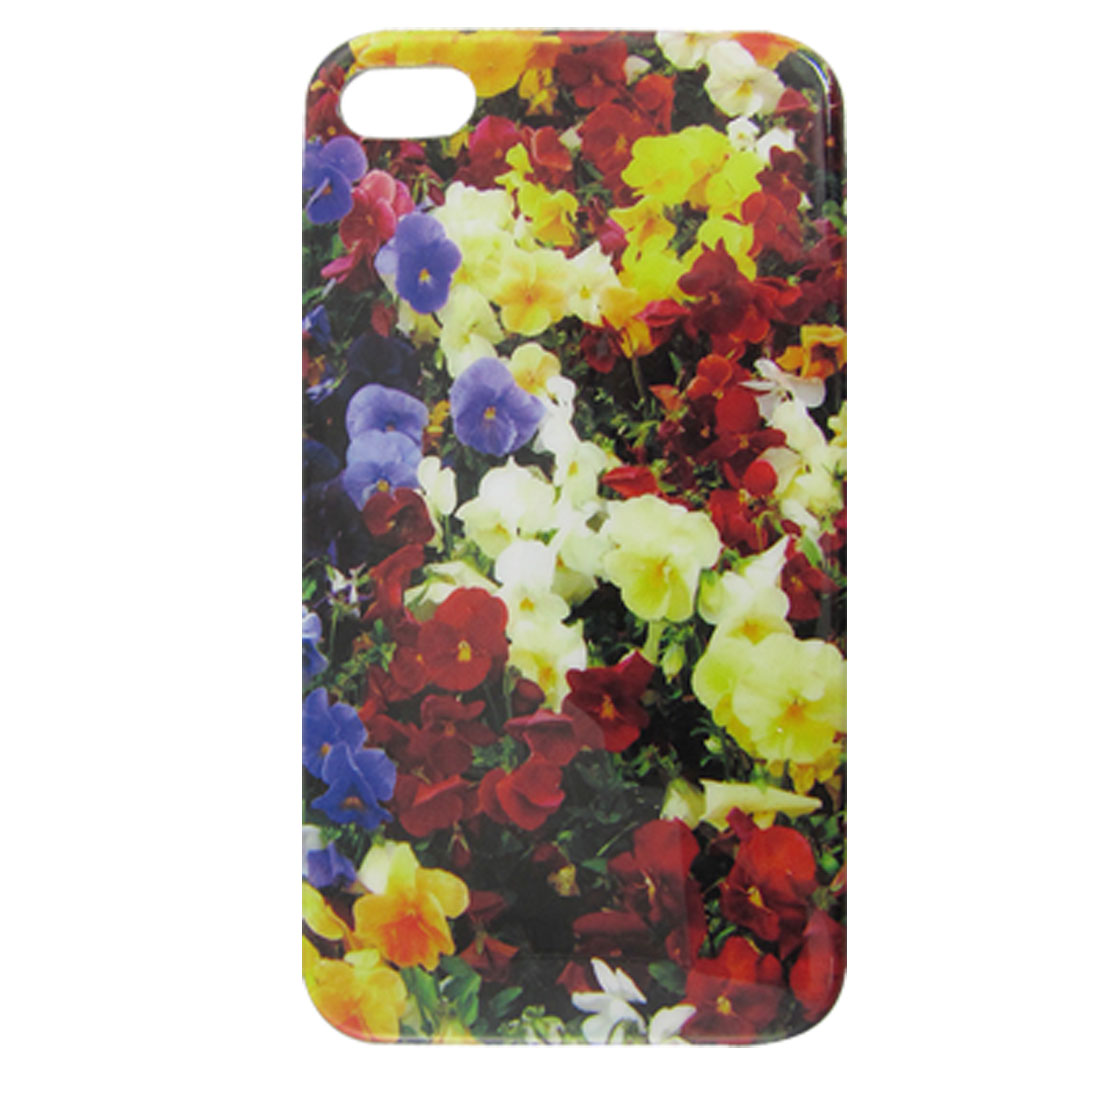 IMD Flowery Print Hard Plastic Shield Cover for iPhone 4 4G 4S - image 1 of 1